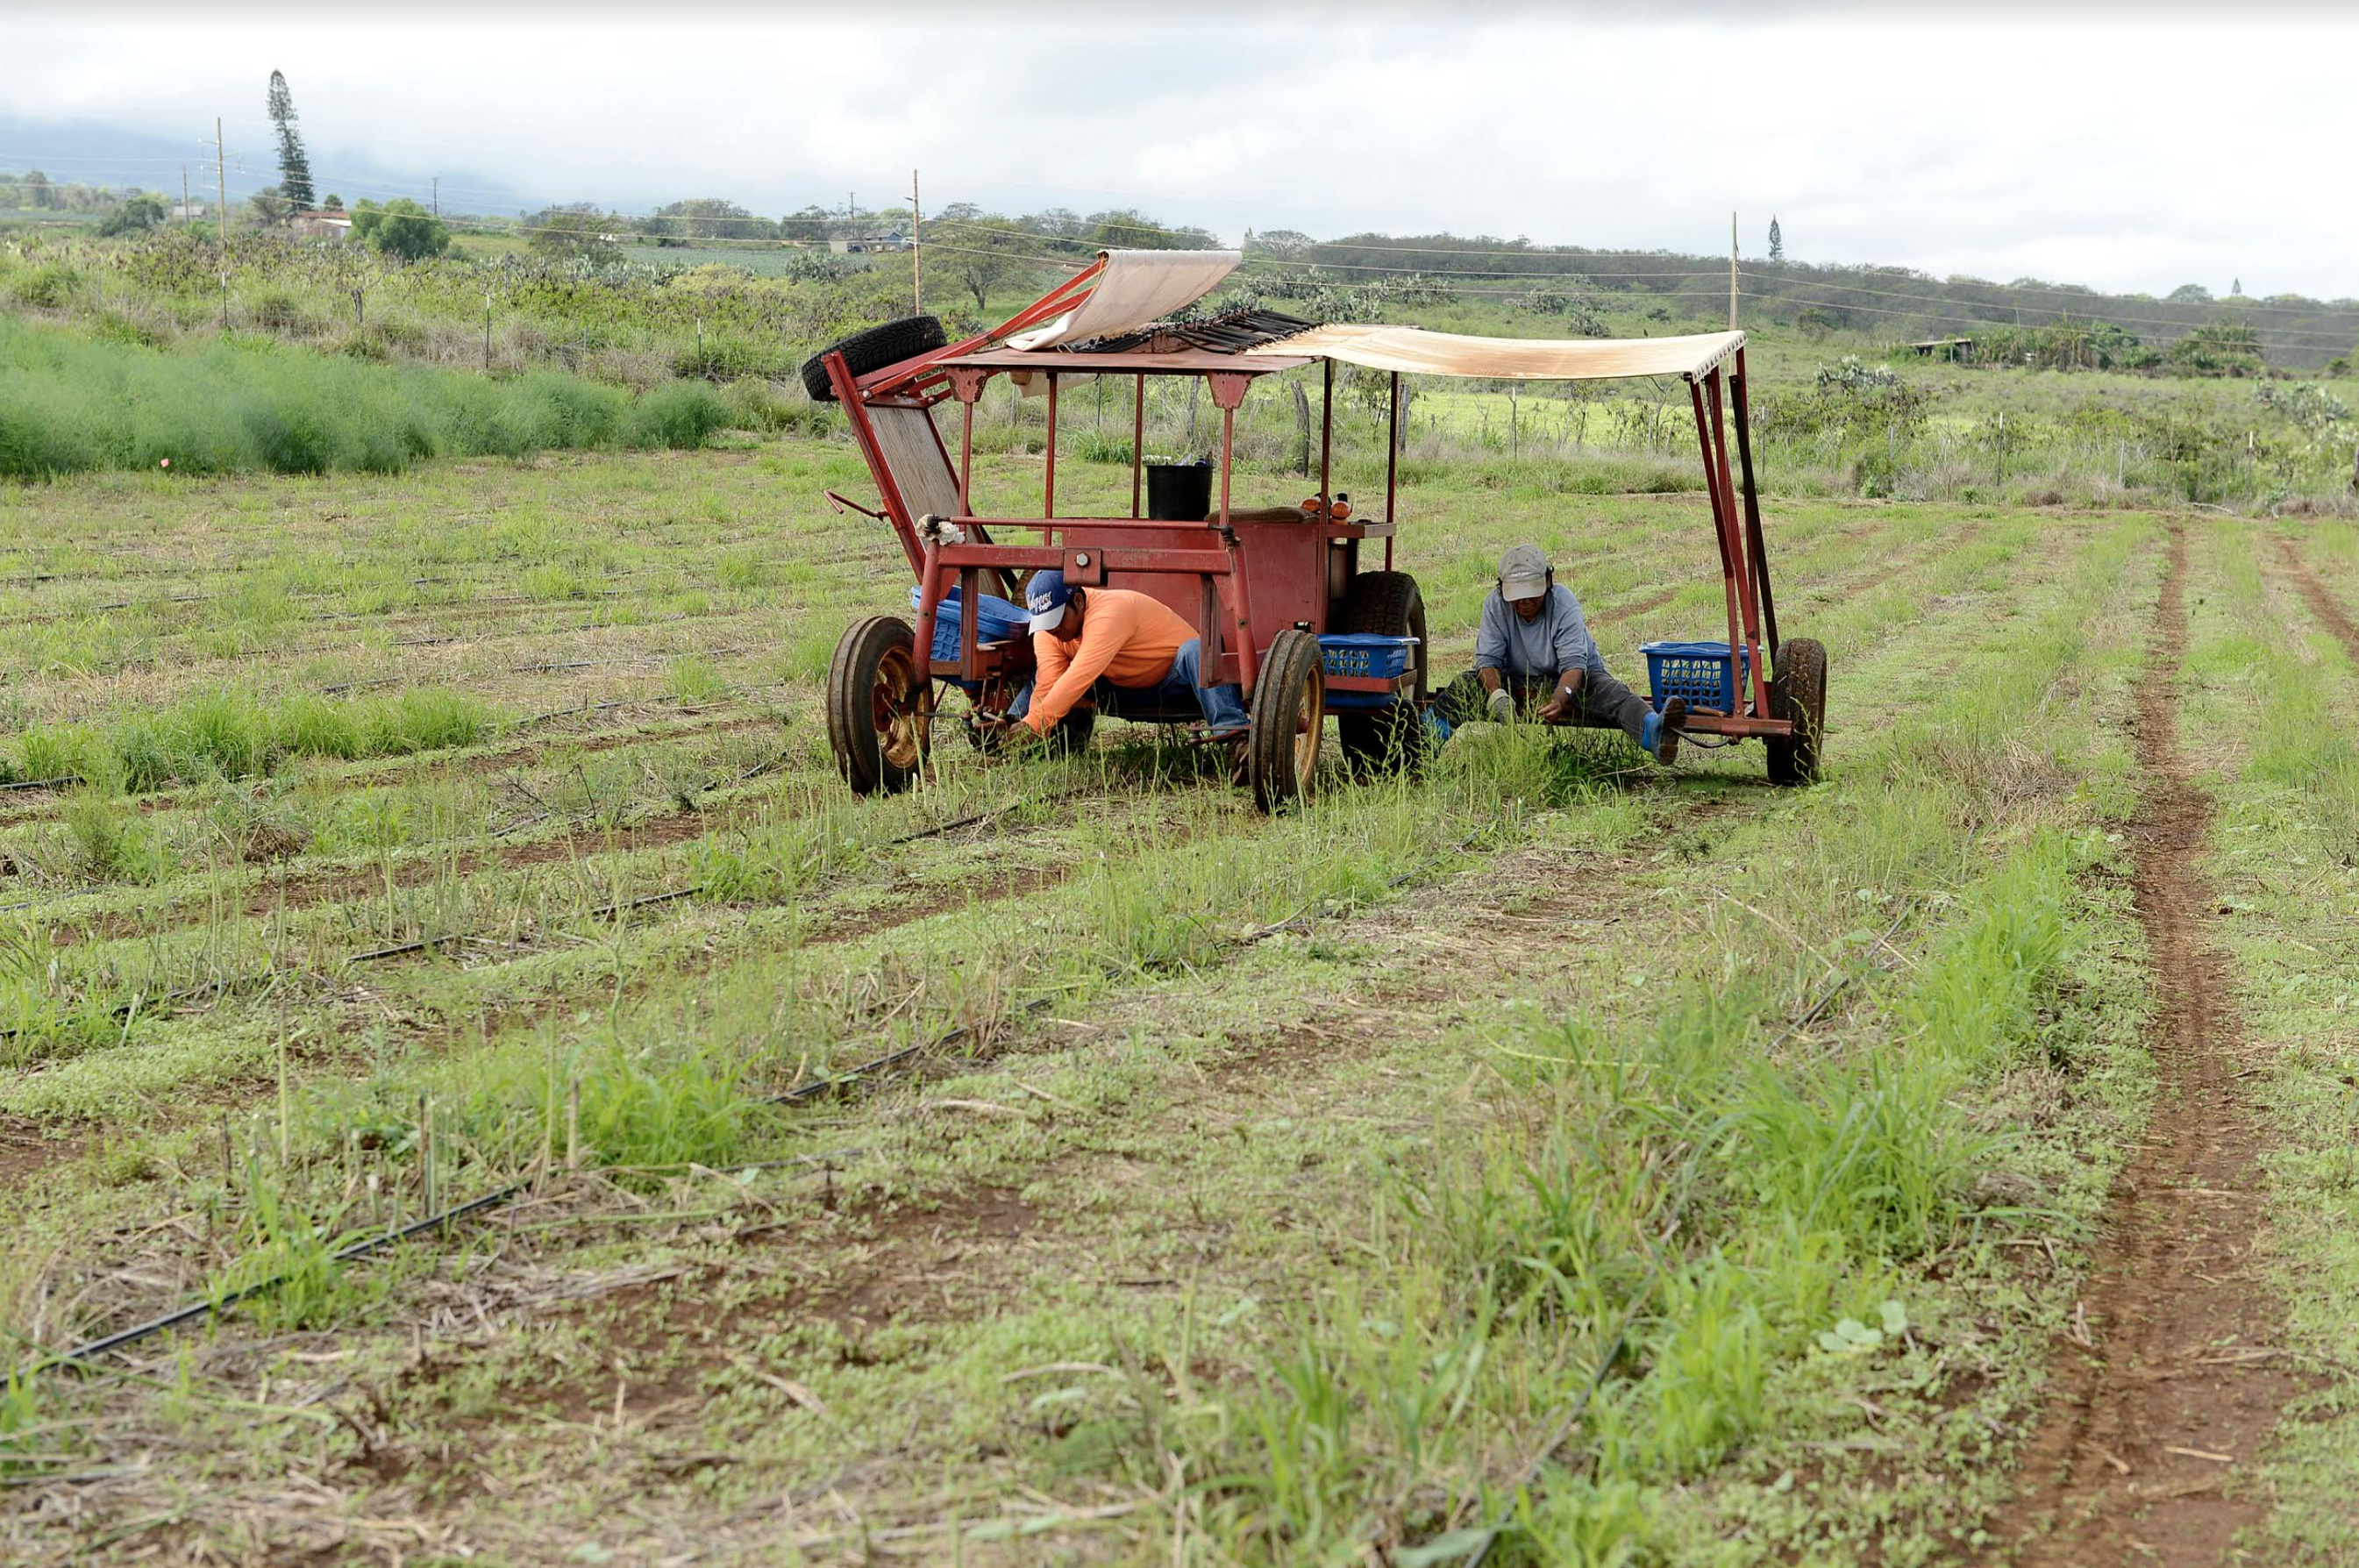 County of Maui announces $2.5 million Agriculture Micro Grant Program